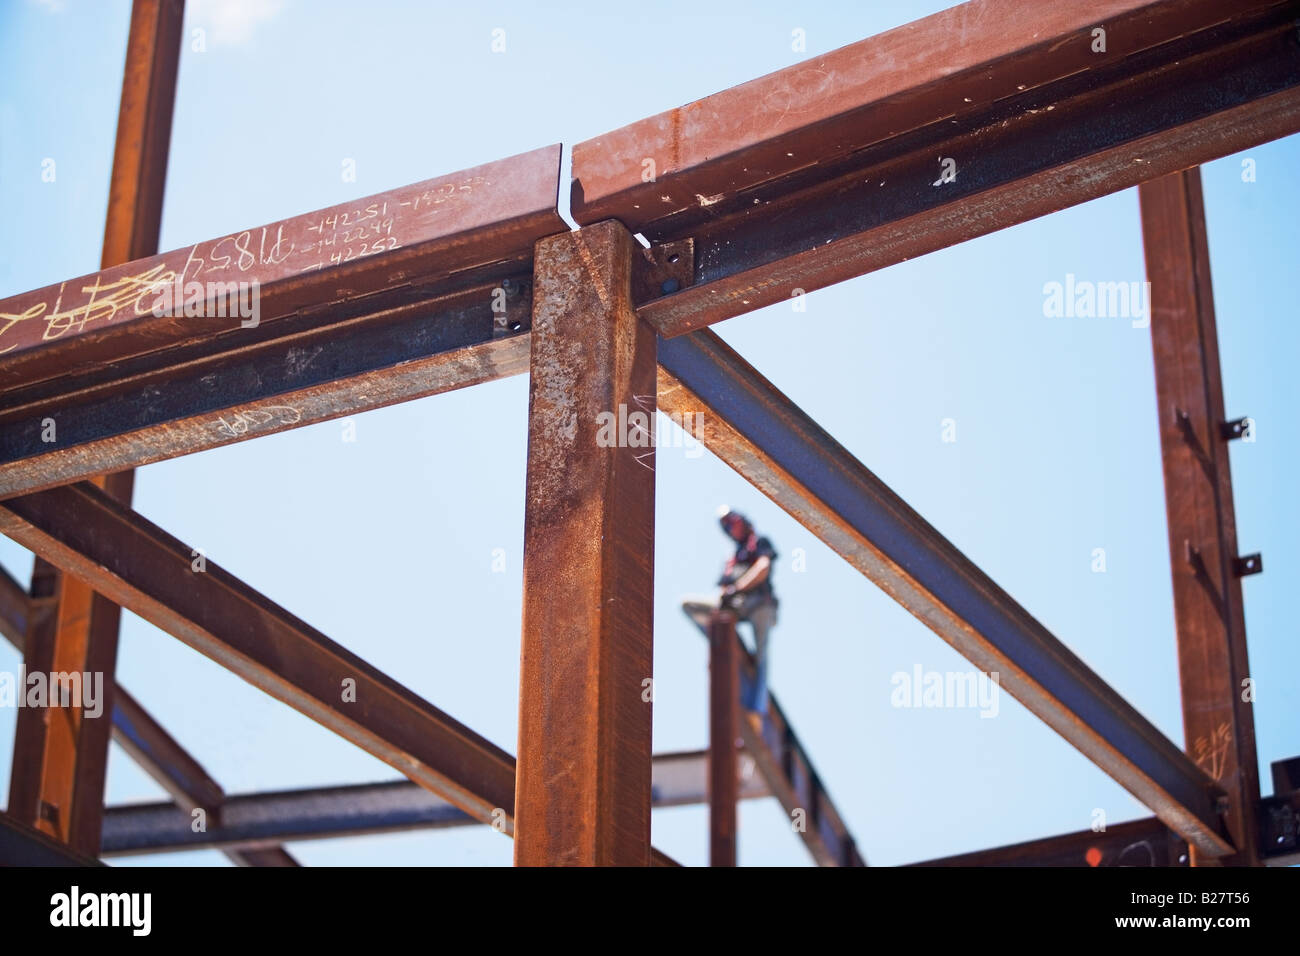 Construction worker on steel beam at construction site - Stock Image